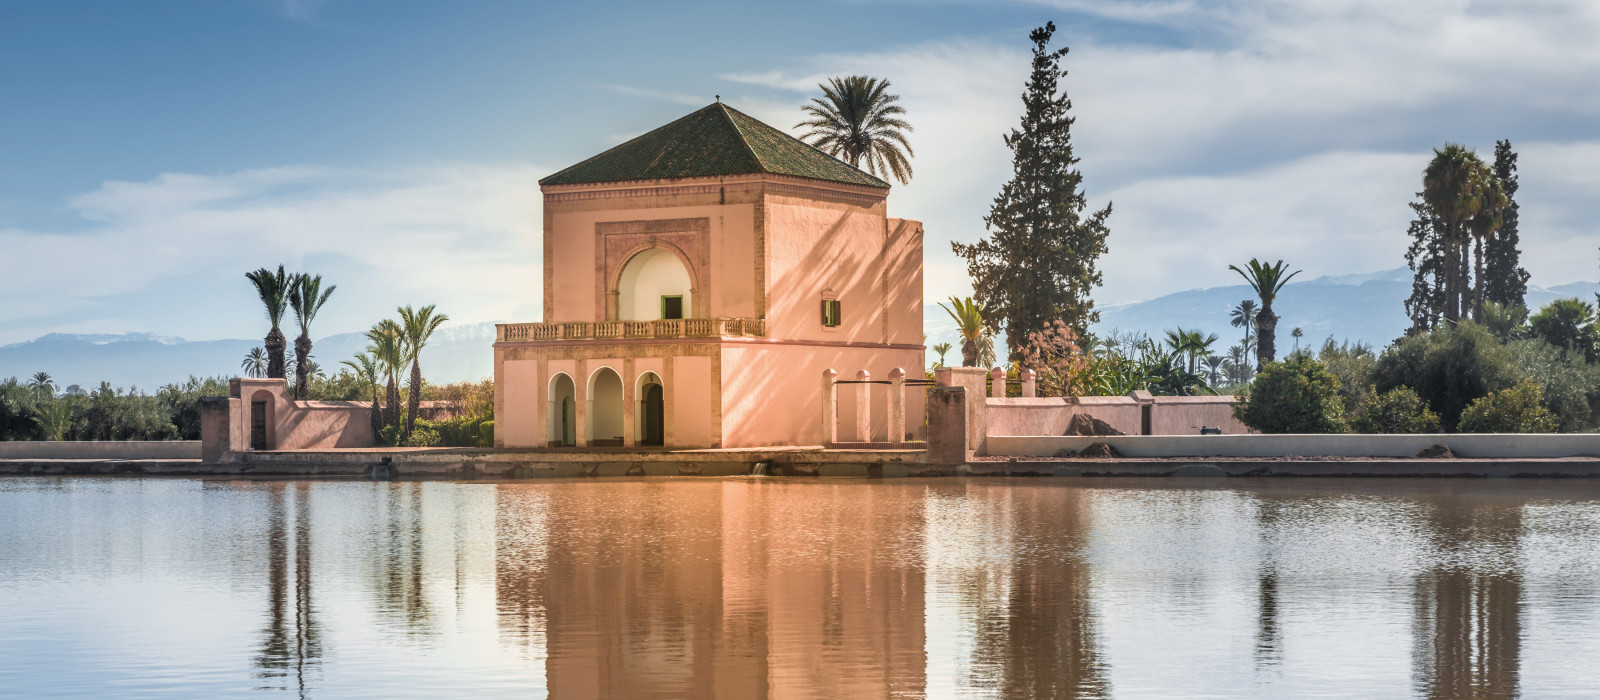 Morocco: Medina Magic and Beni Mellal Tour Trip 1